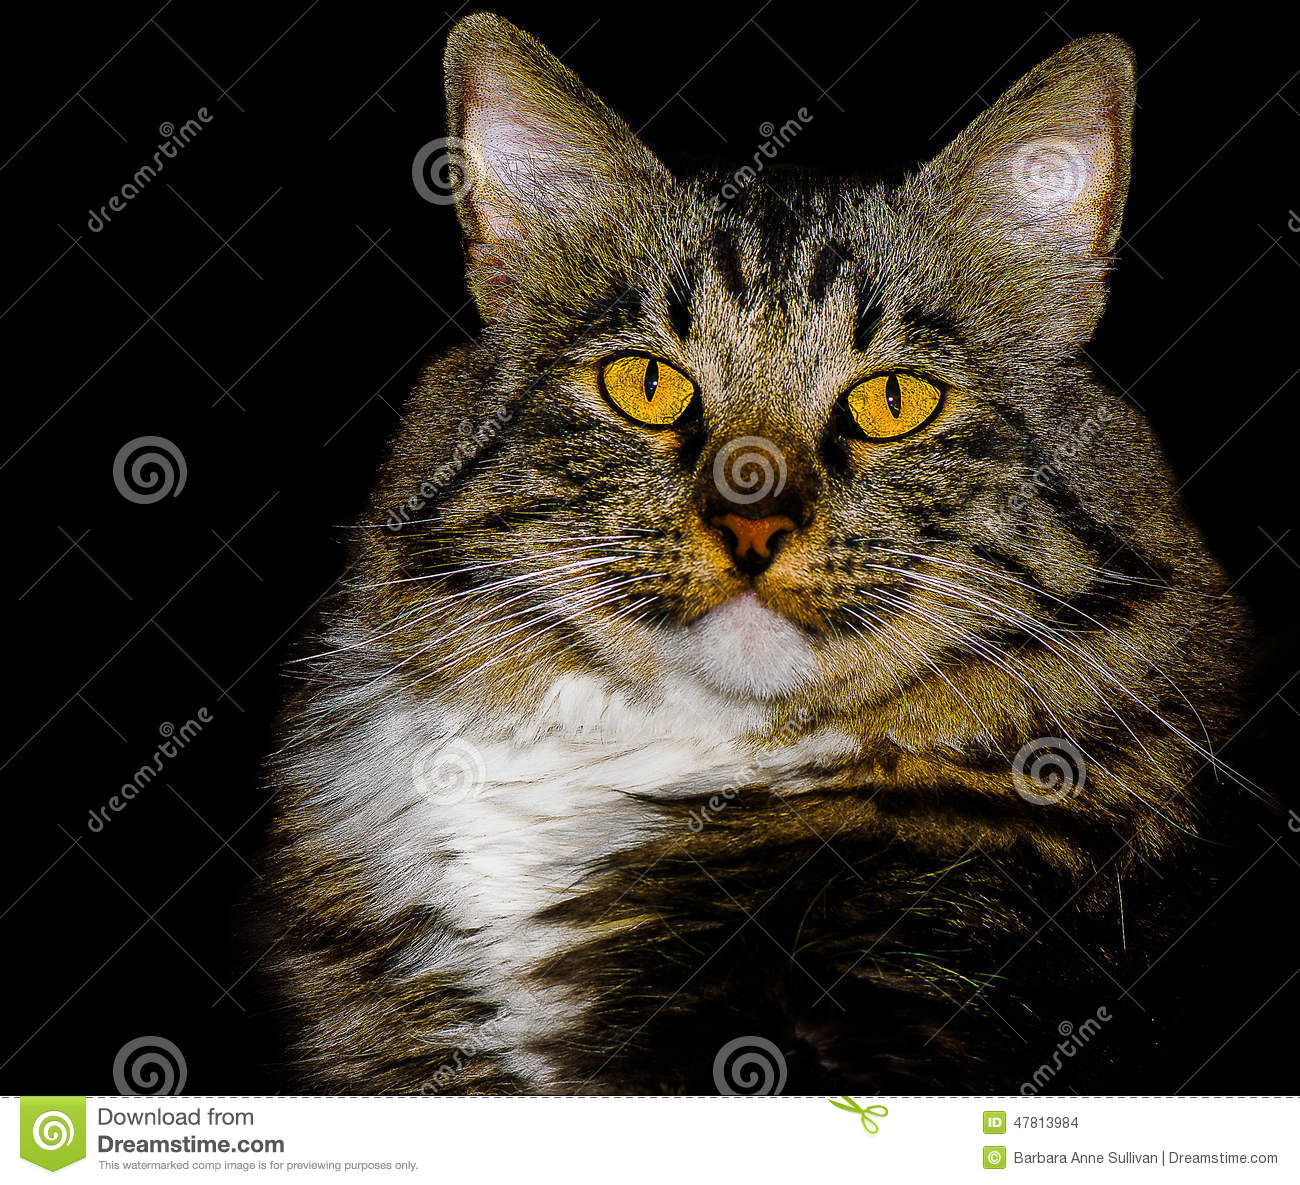 Razza americana Cat With Stunning Yellow Eyes della miscela del bobtail